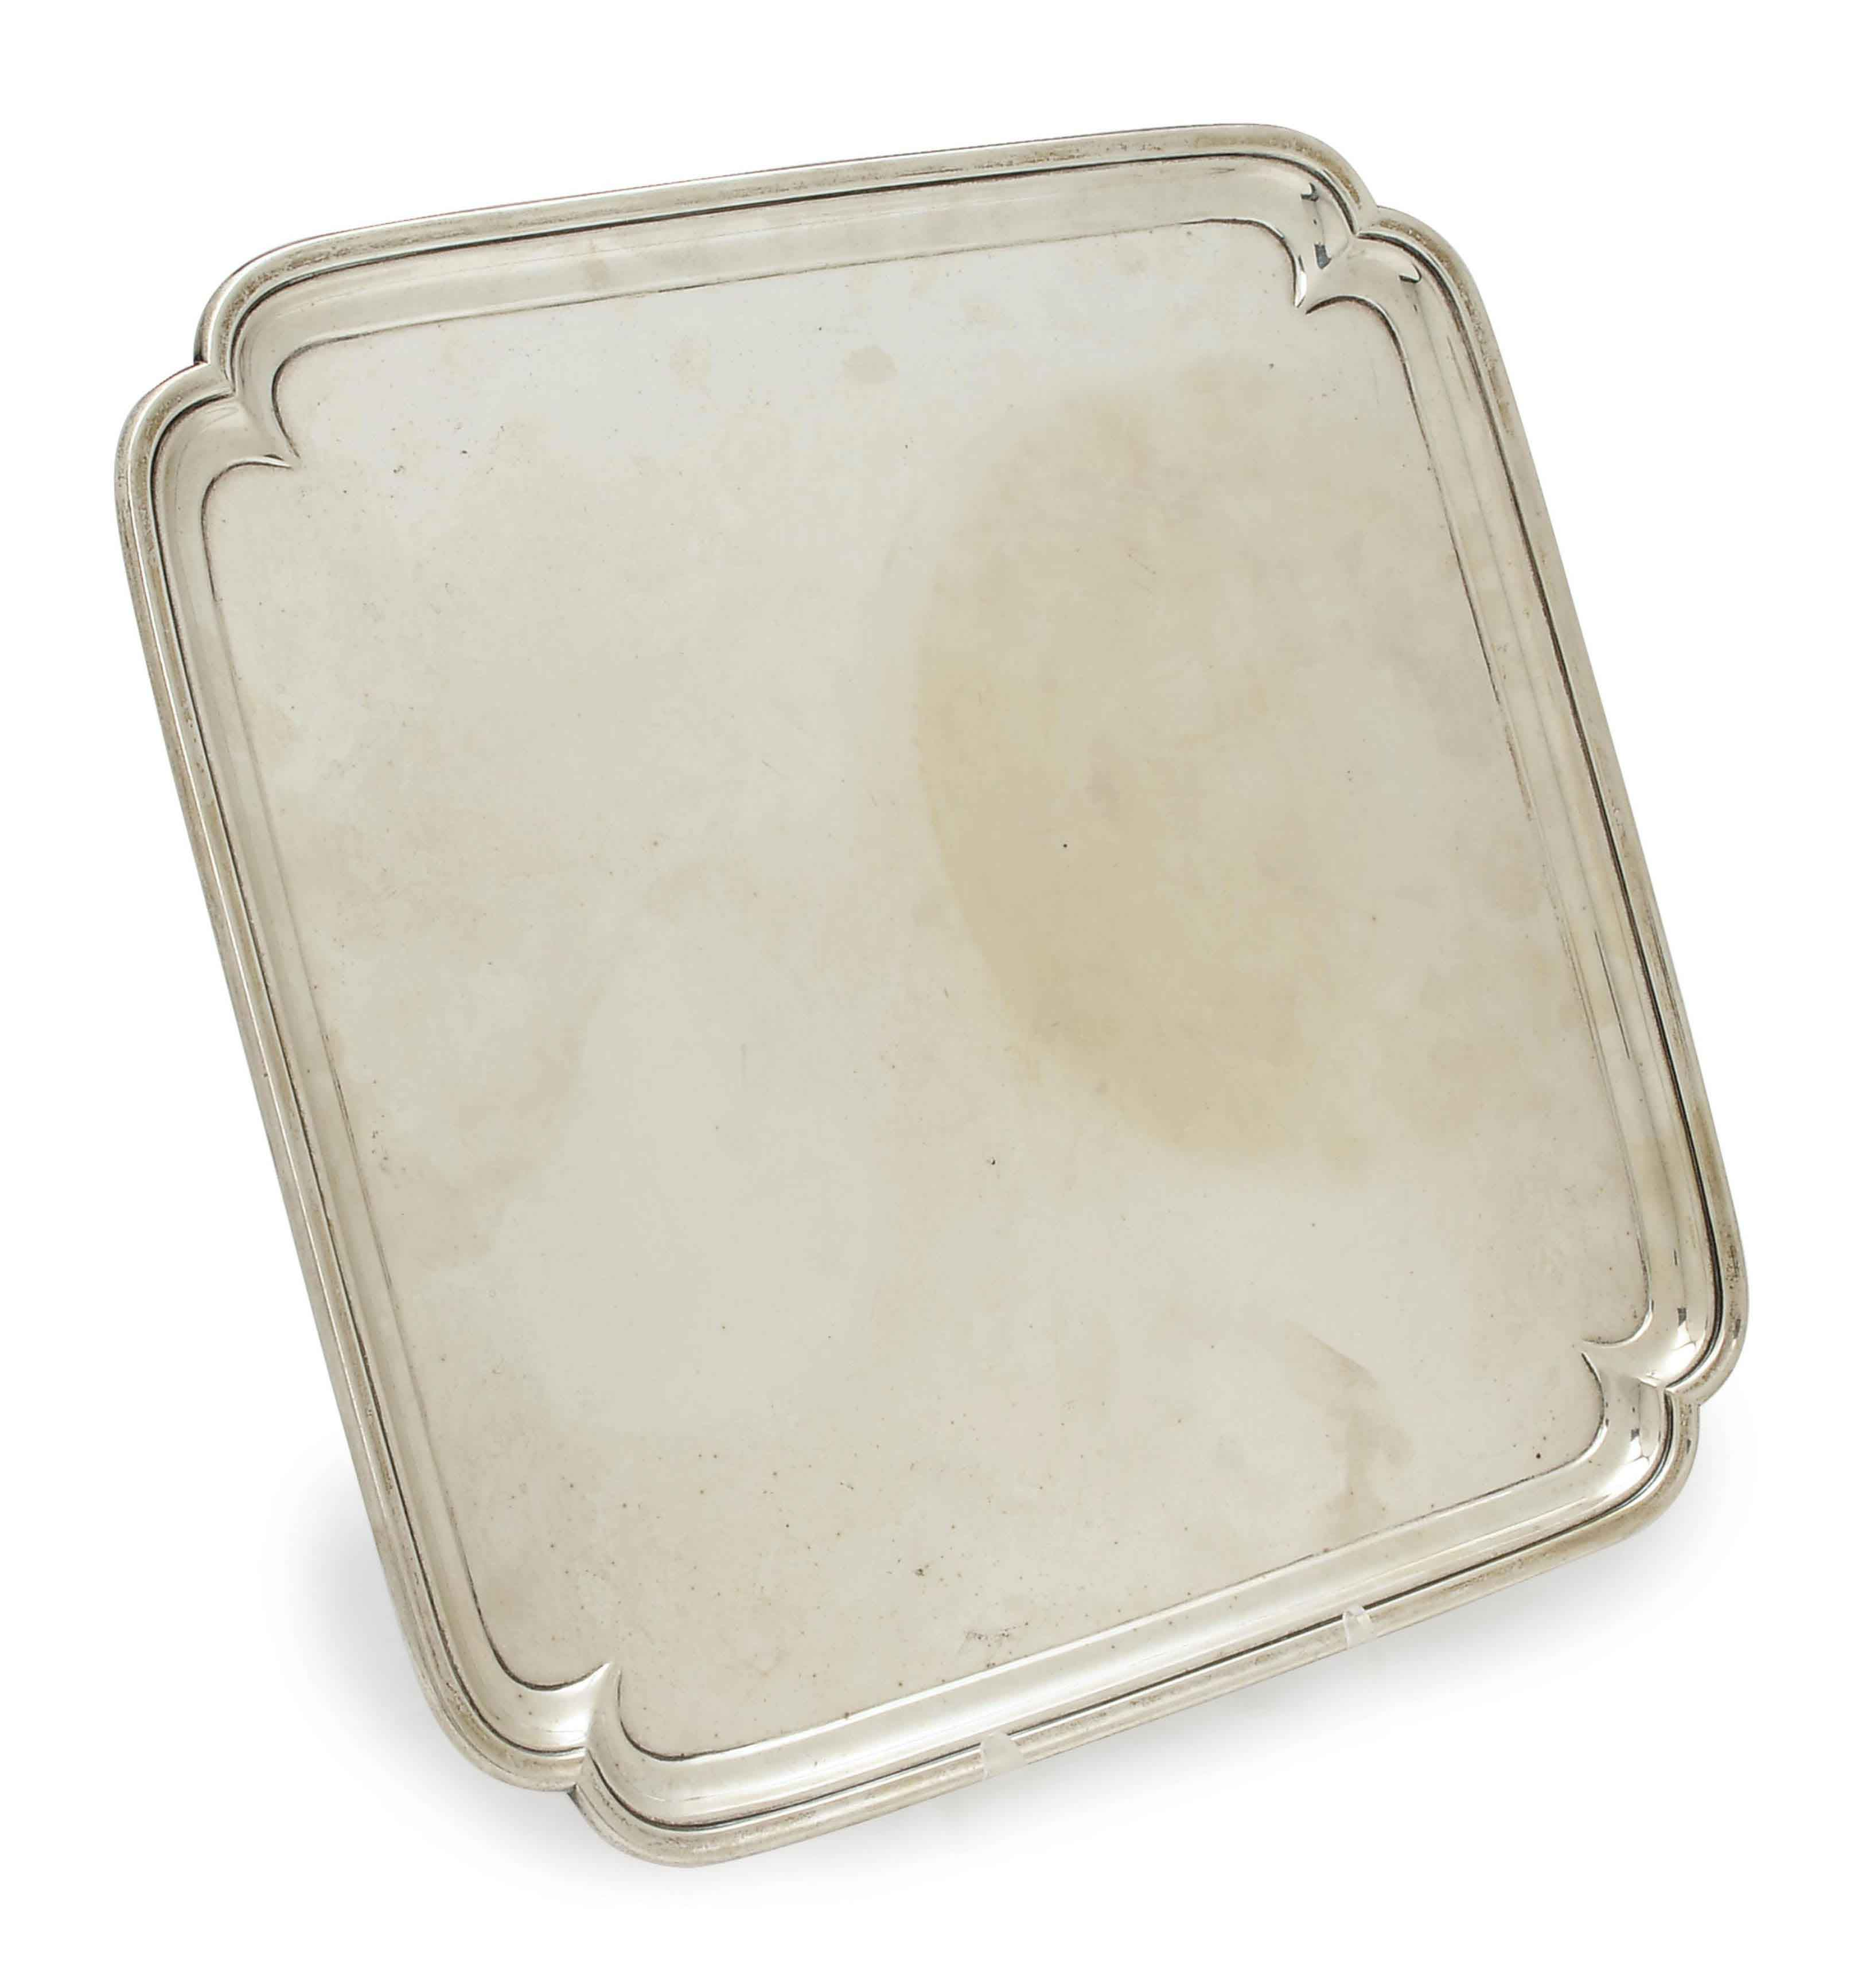 AN AMERICAN SILVER CANTED SQUARE SALVER,